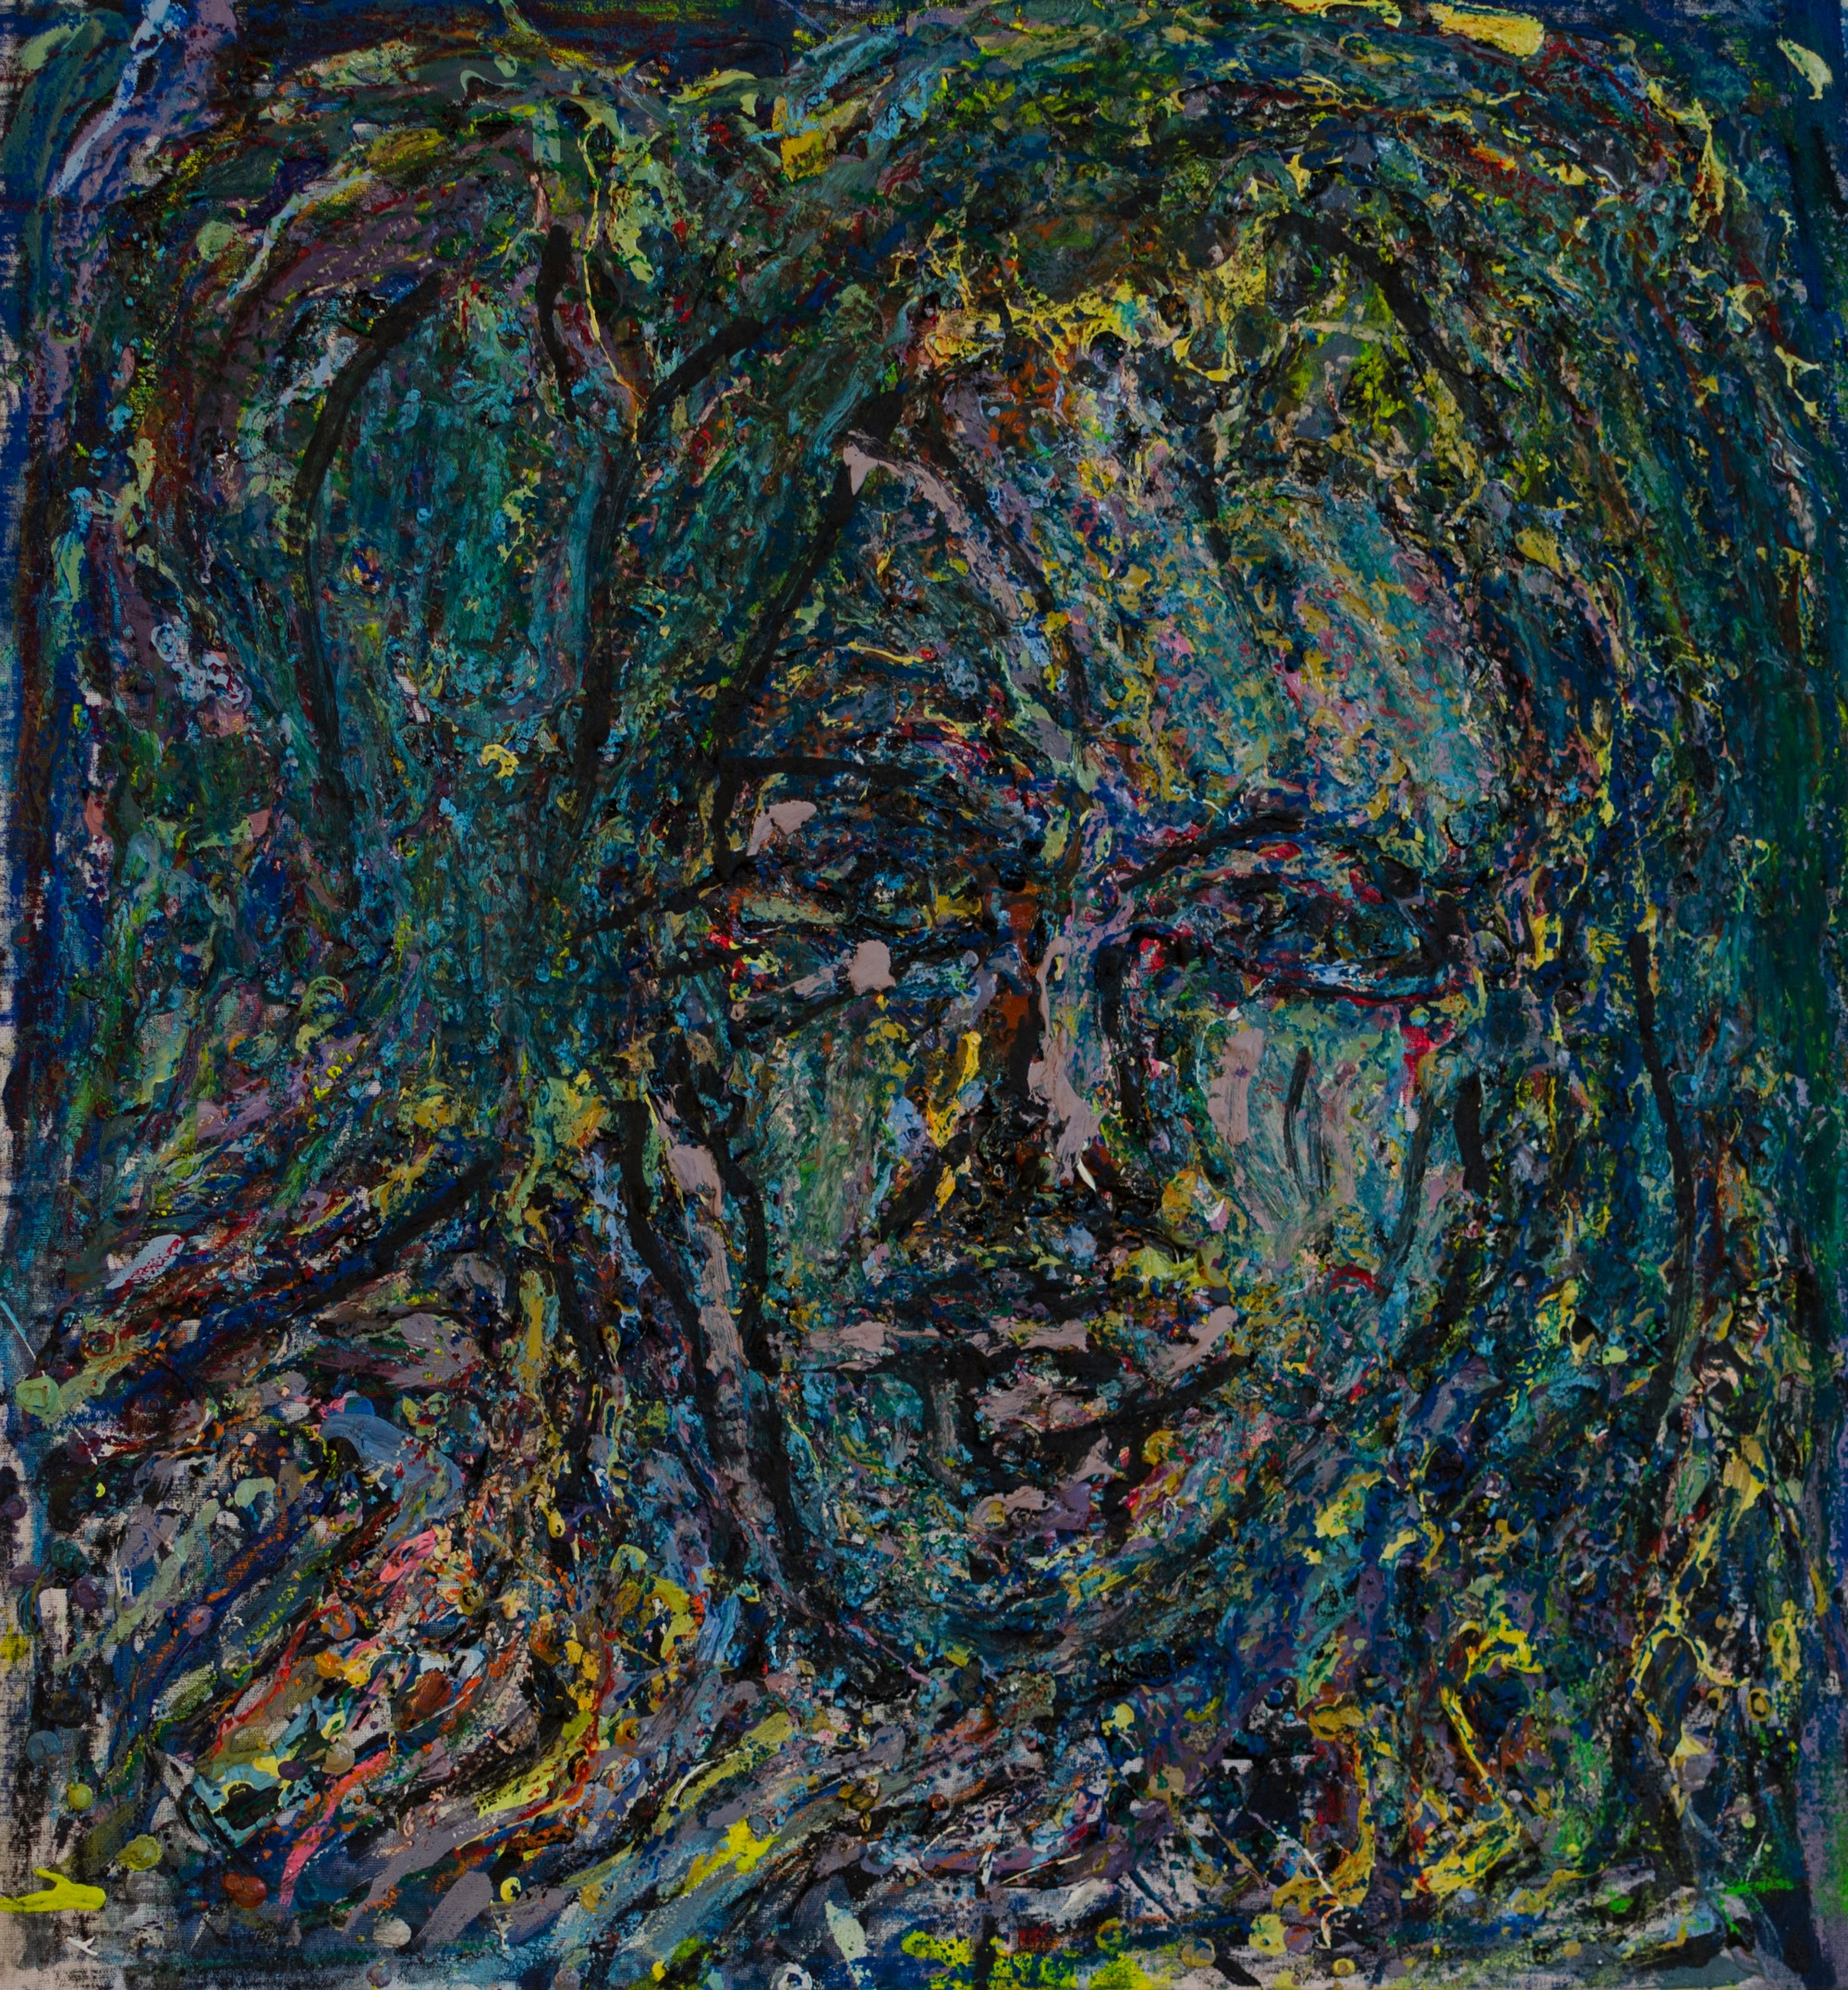 7Plastic colours,oil pastel and charcoal.Selfportrait.44x47cm